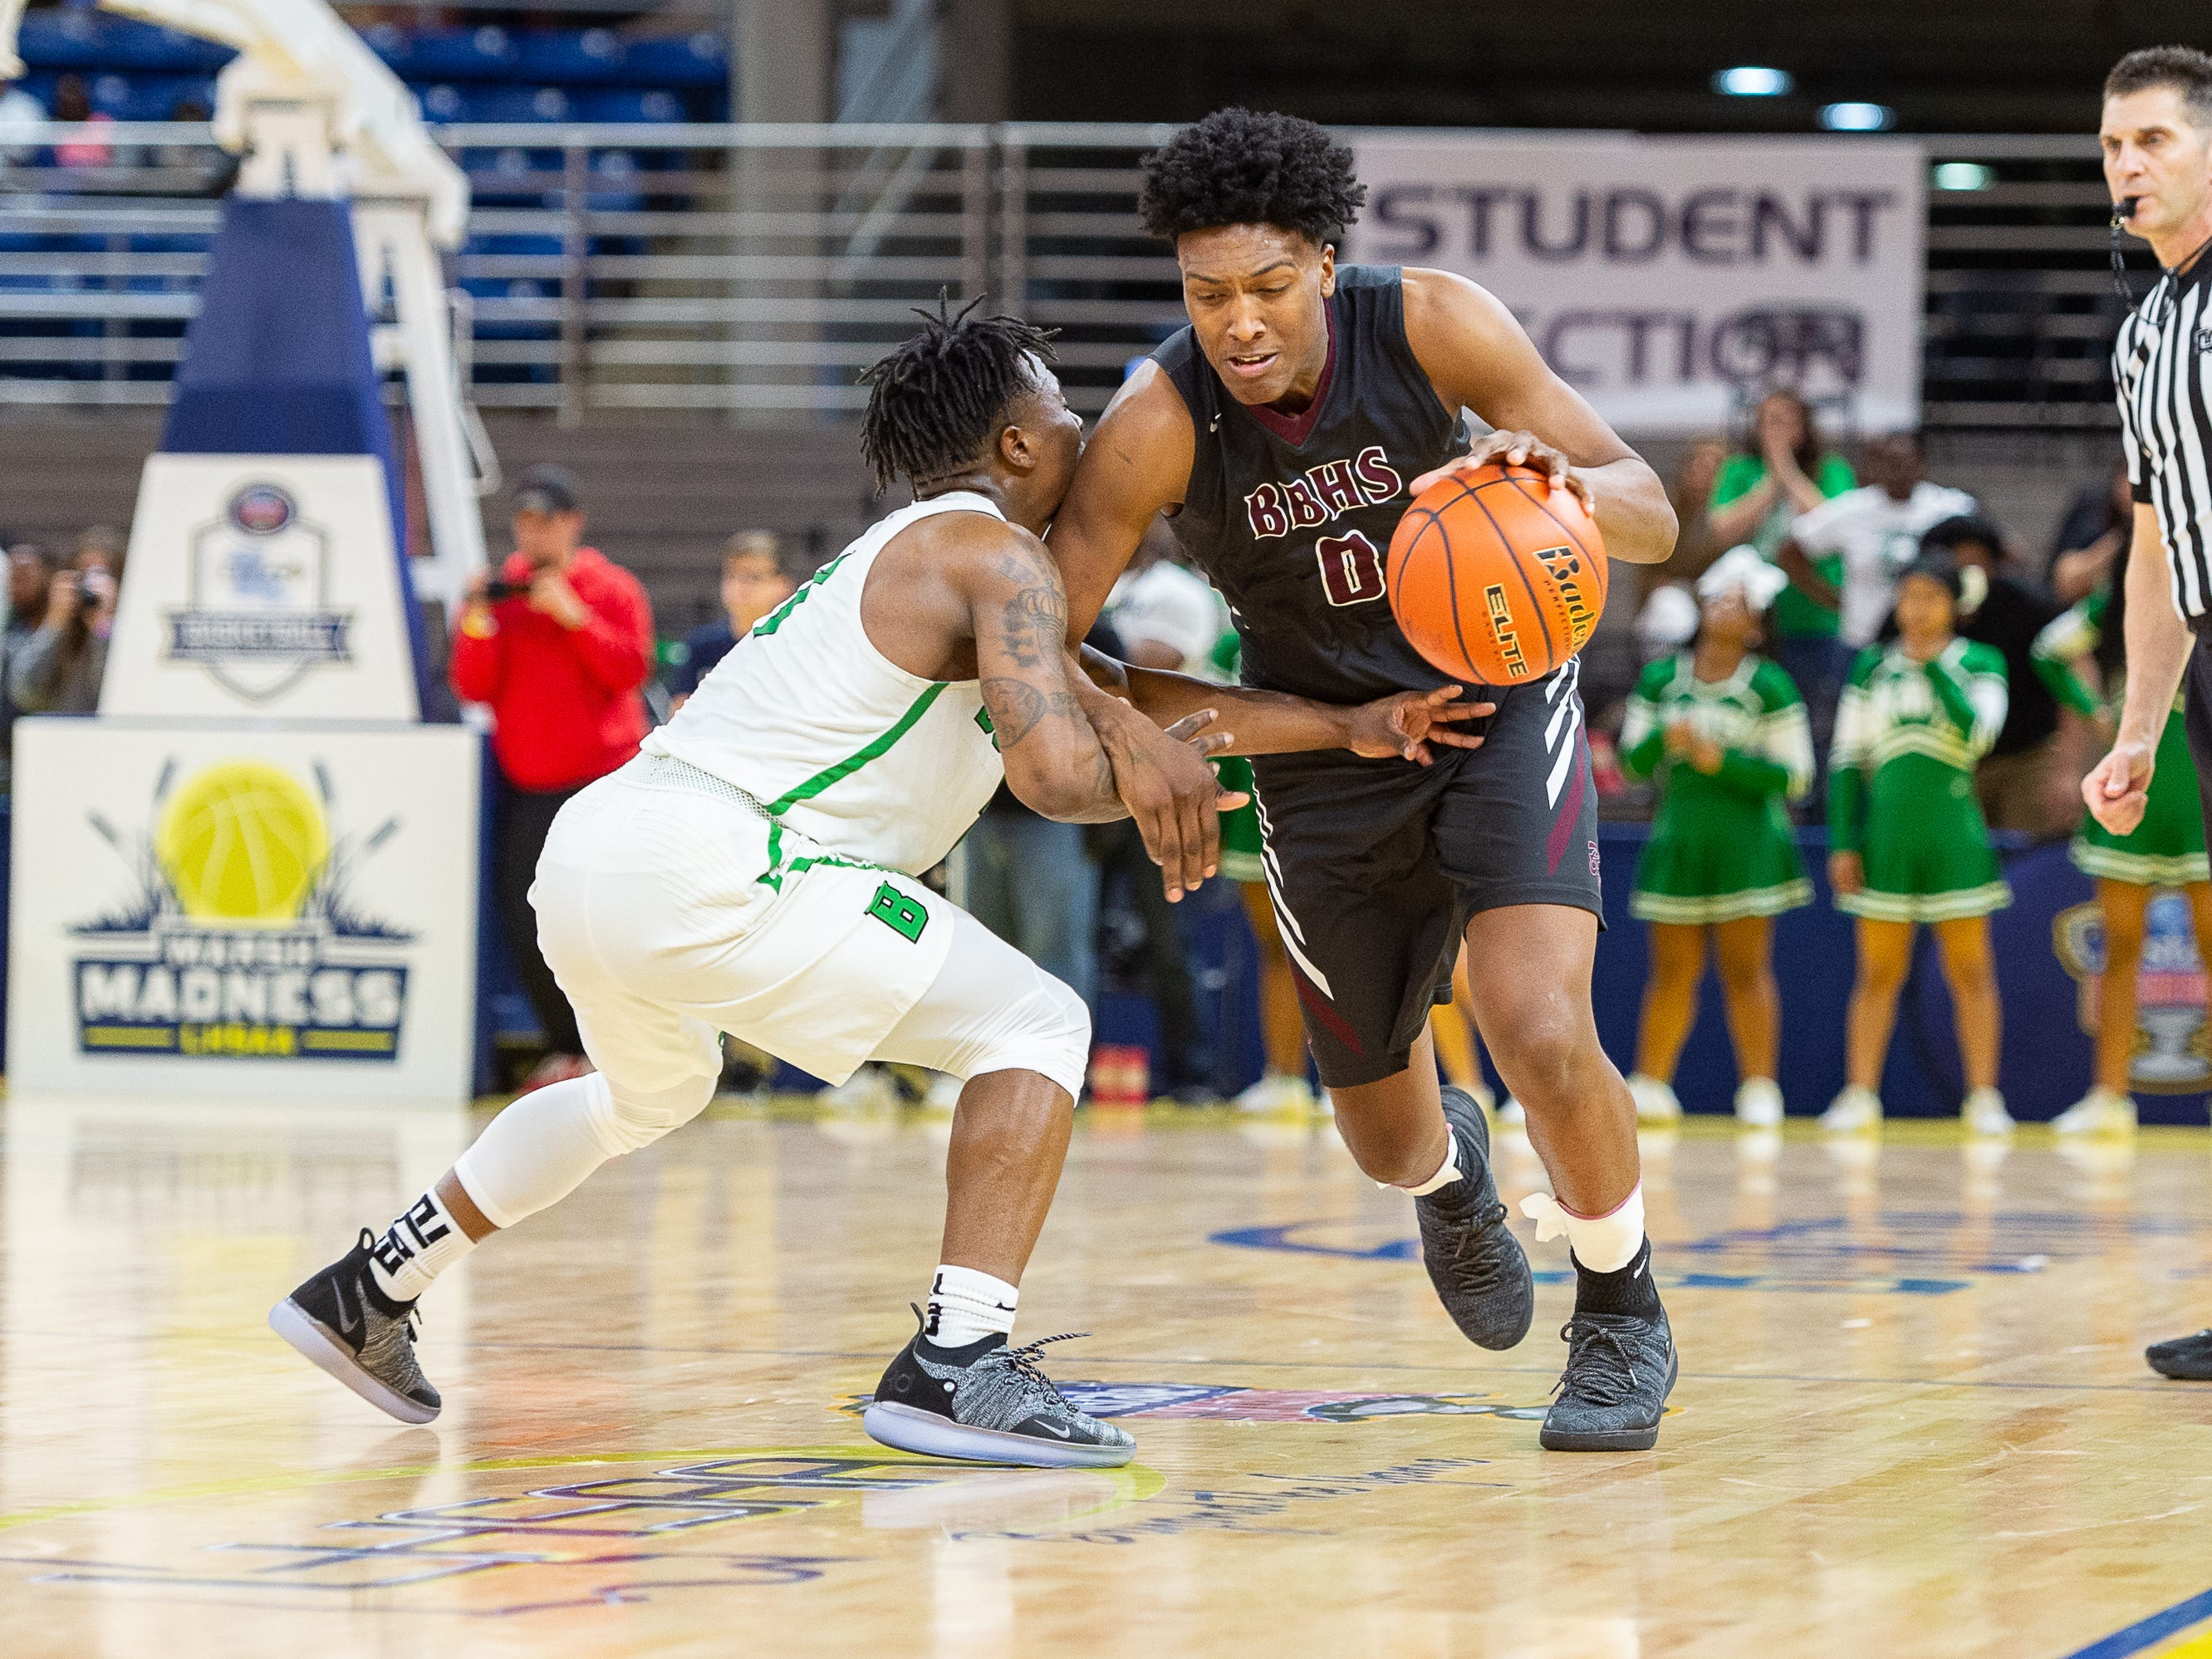 Deandre Hypolite drives the ball as Breaux Bridge beats Bossier 61-58 to win the Allstate Sugar Bowl/LHSAA Boys' Marsh Madness State Championship. Friday, March 8, 2019.